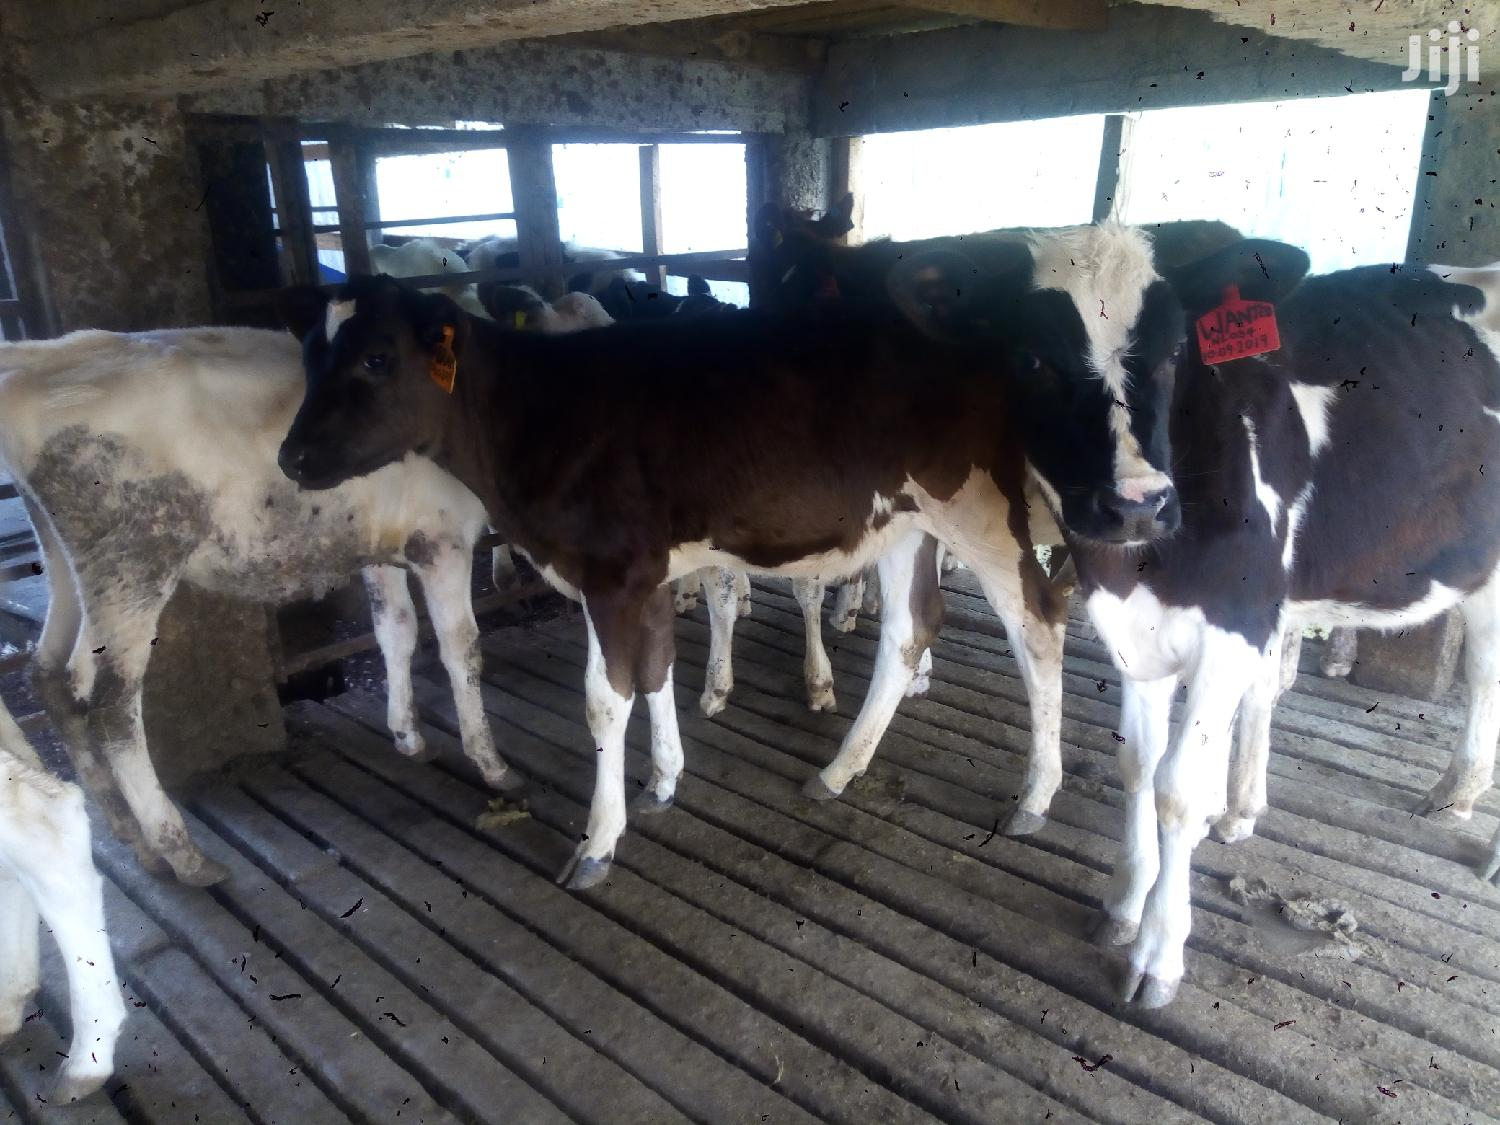 Cows/Cattle For Sale | Livestock & Poultry for sale in Githunguri, Kiambu, Kenya